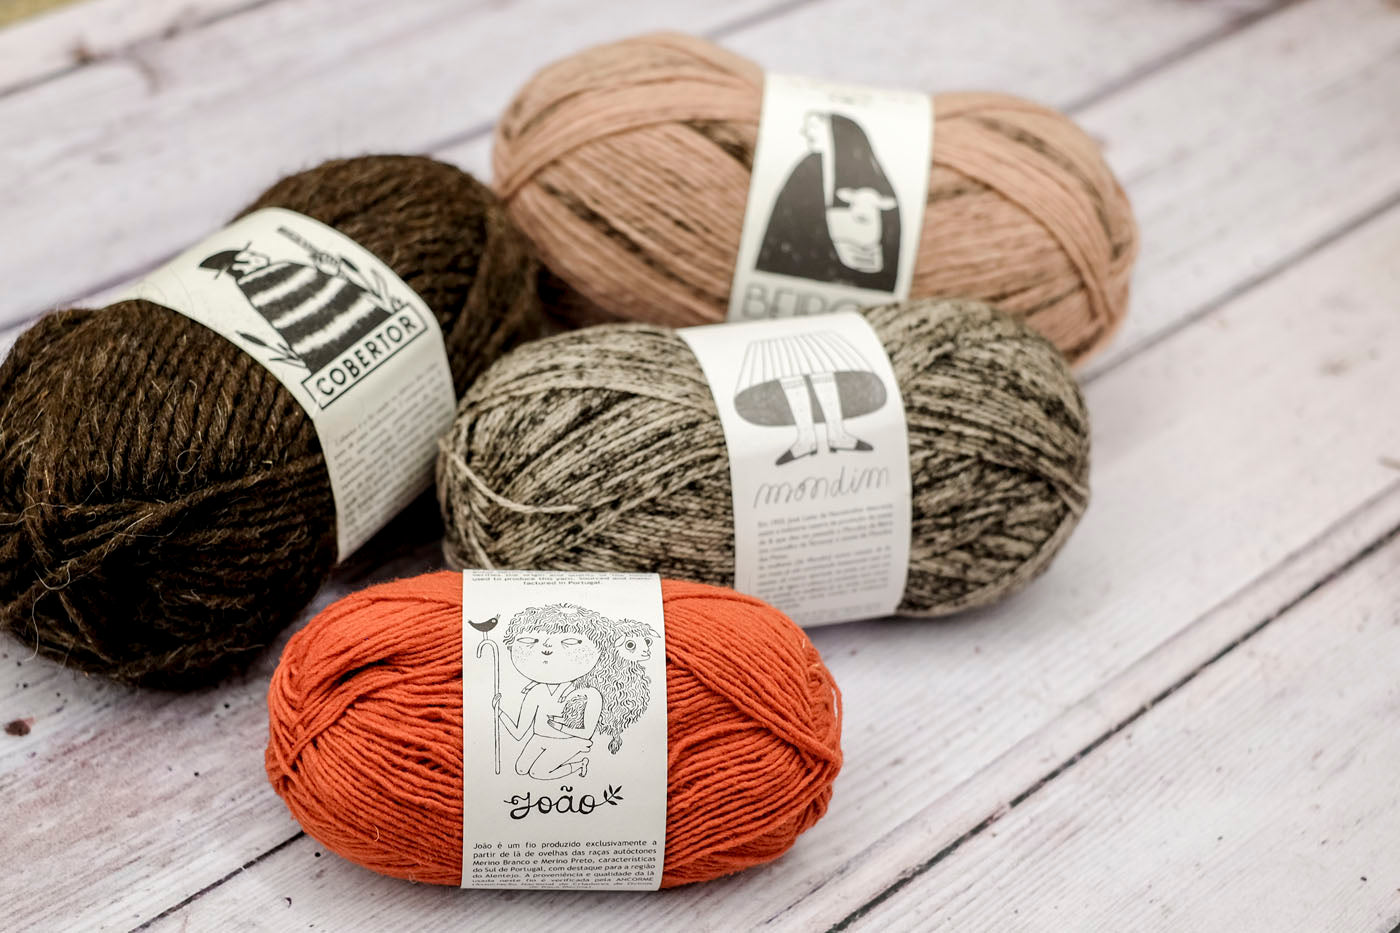 Four balls of Portuguese yarns, each of them has a different black and white illustrated label: shepherd woman holding a lamb, woman's socks, shepherd with blanket, and boy holding a sheep